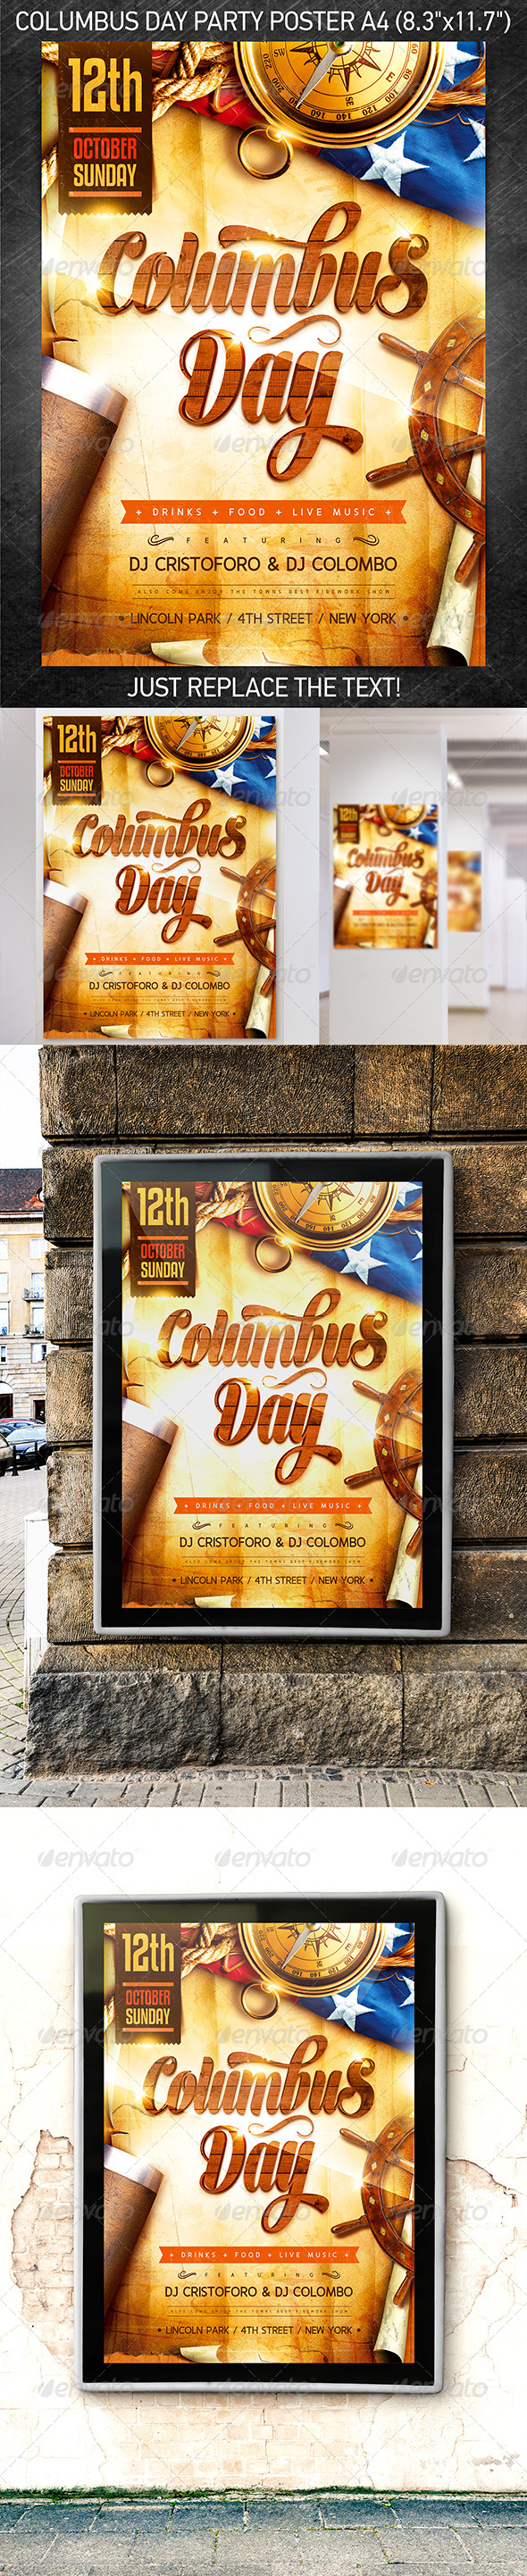 GraphicRiver Columbus Day Party Poster 5576992